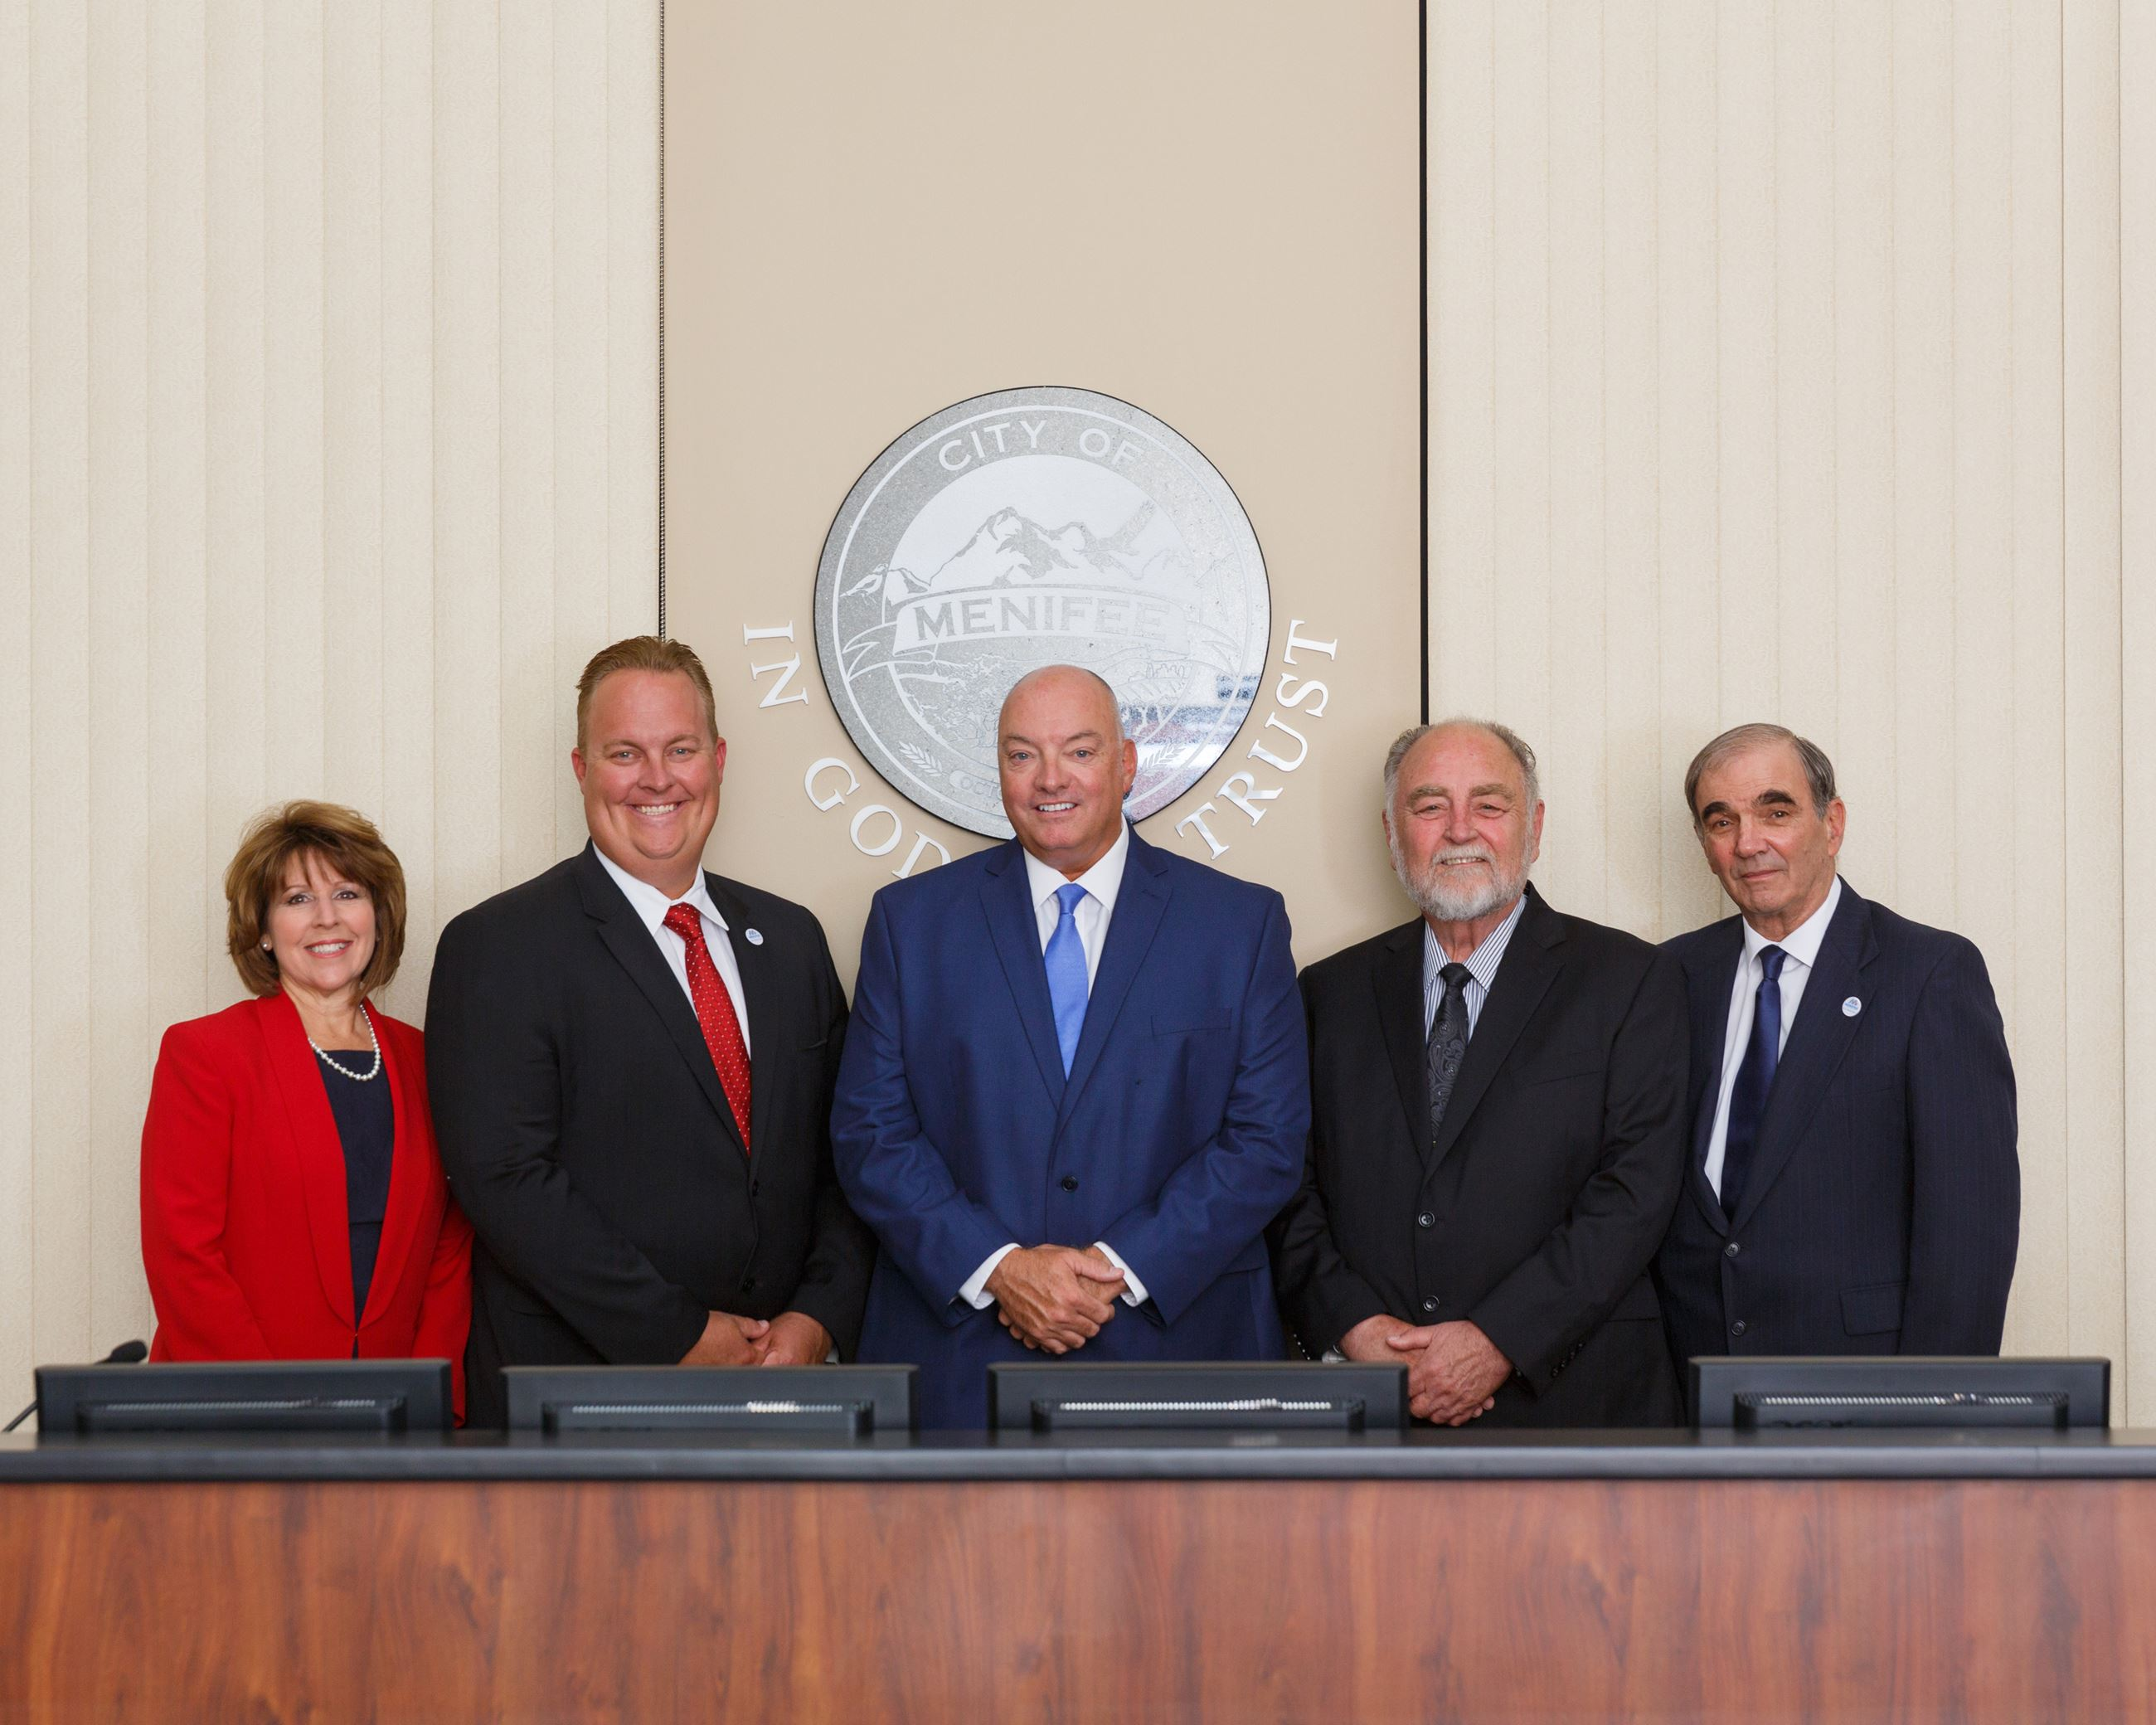 Council Group